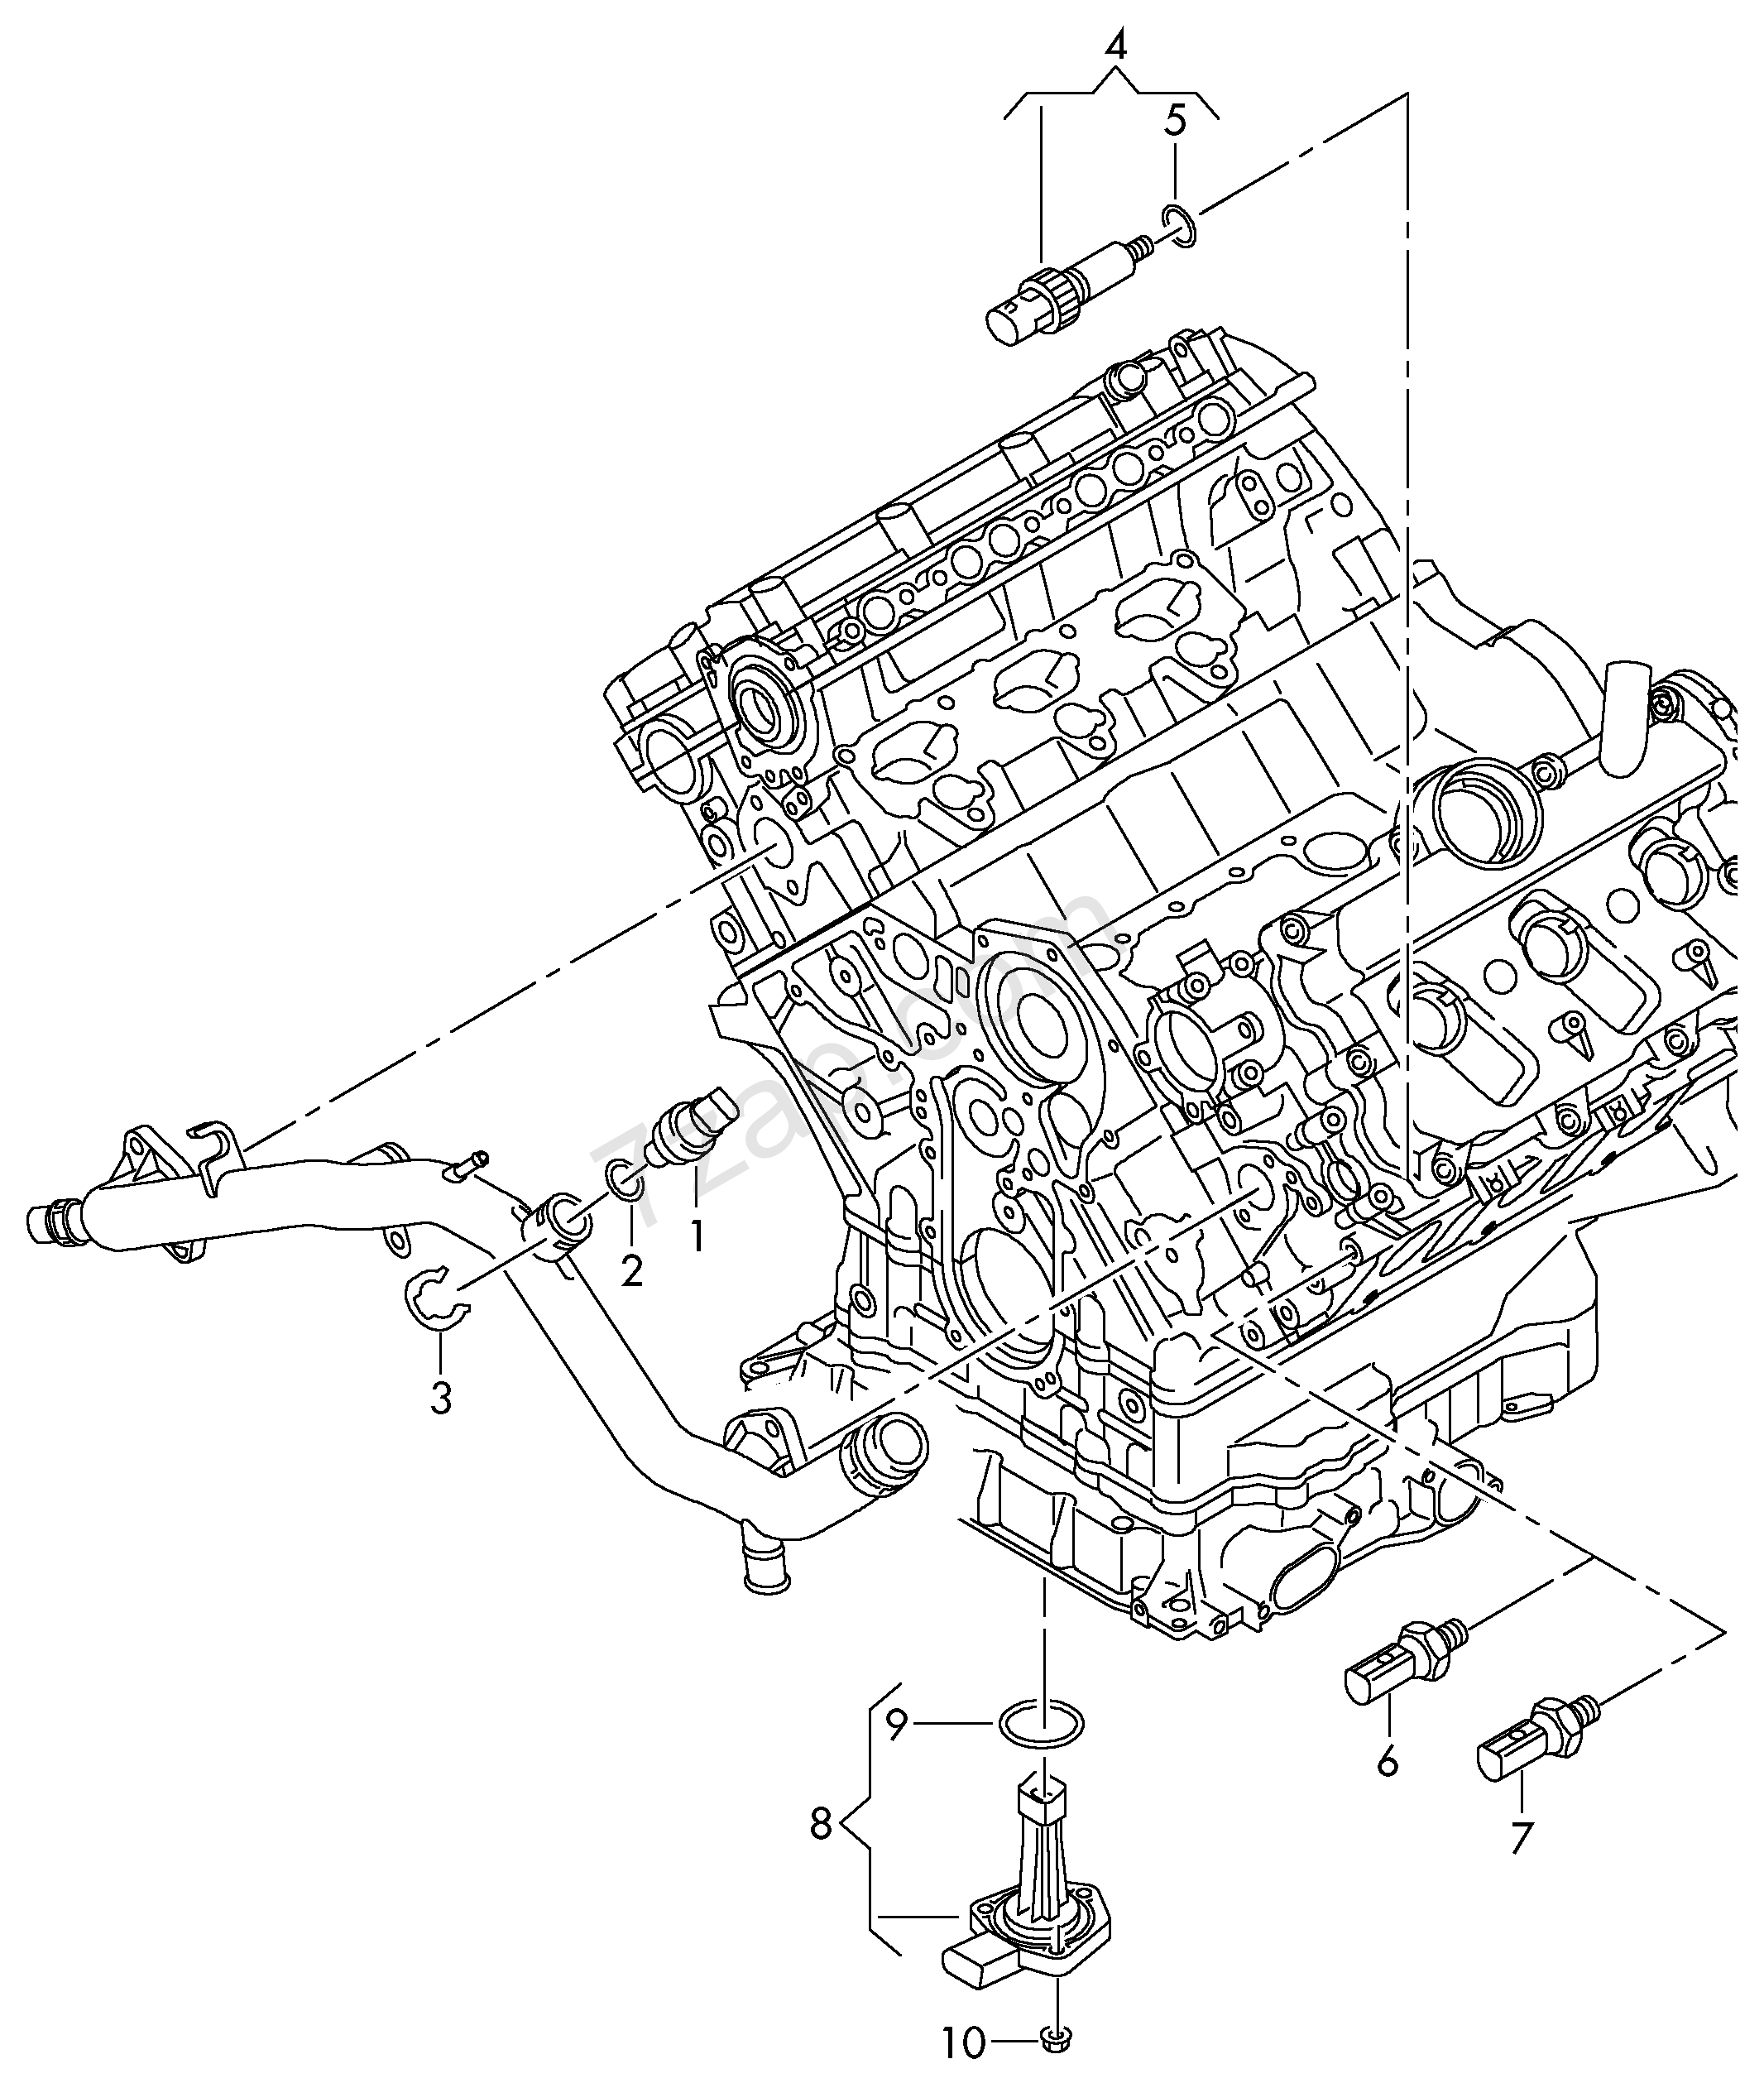 Switches and senders on engine audi a4 s4 avant quattro a4q europa 2015 year